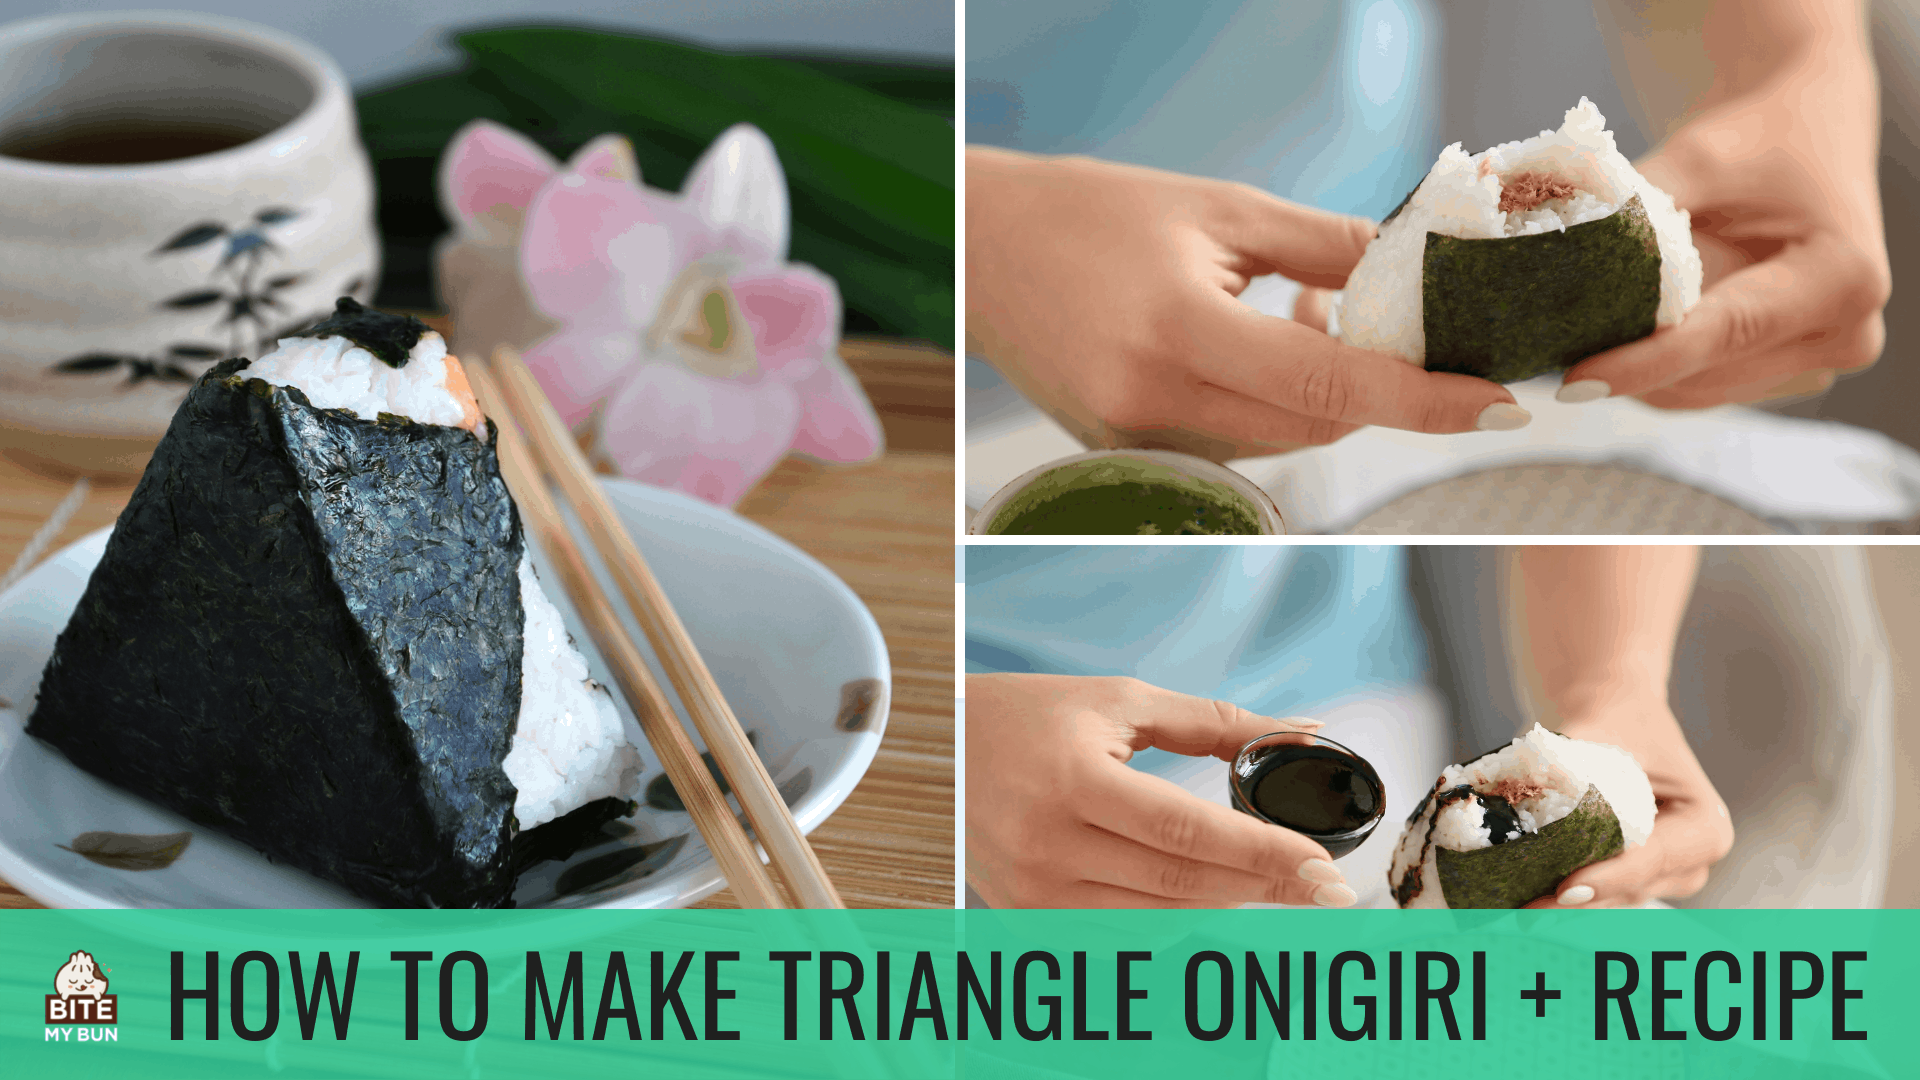 How to make triangle onigiri | Recipe + info for this traditional Japanese snack